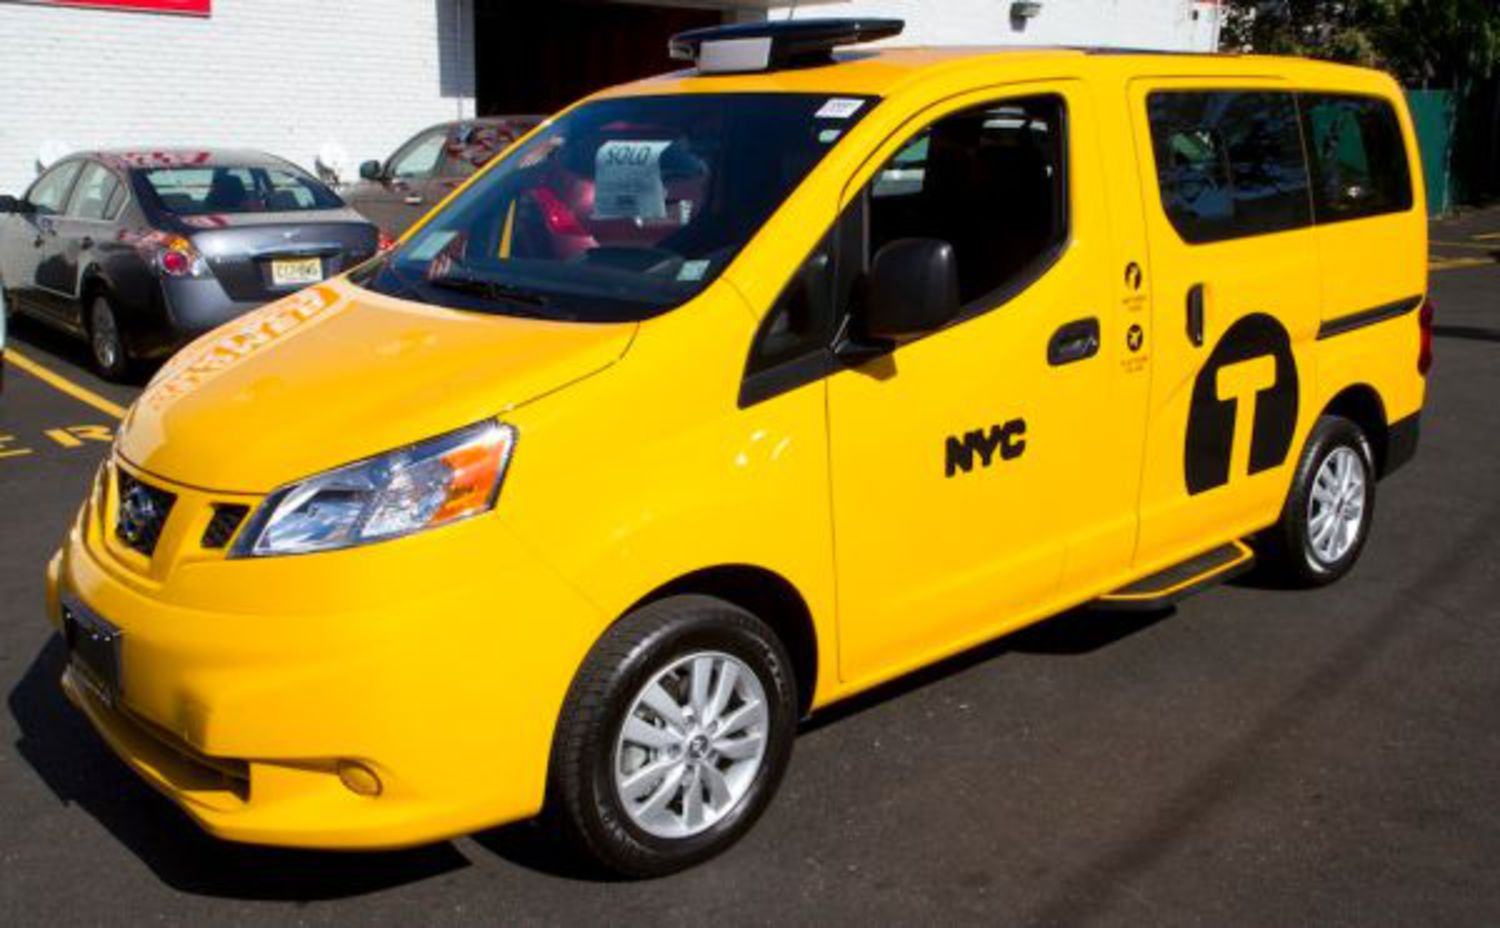 What's next: The Taxi of Tomorrow